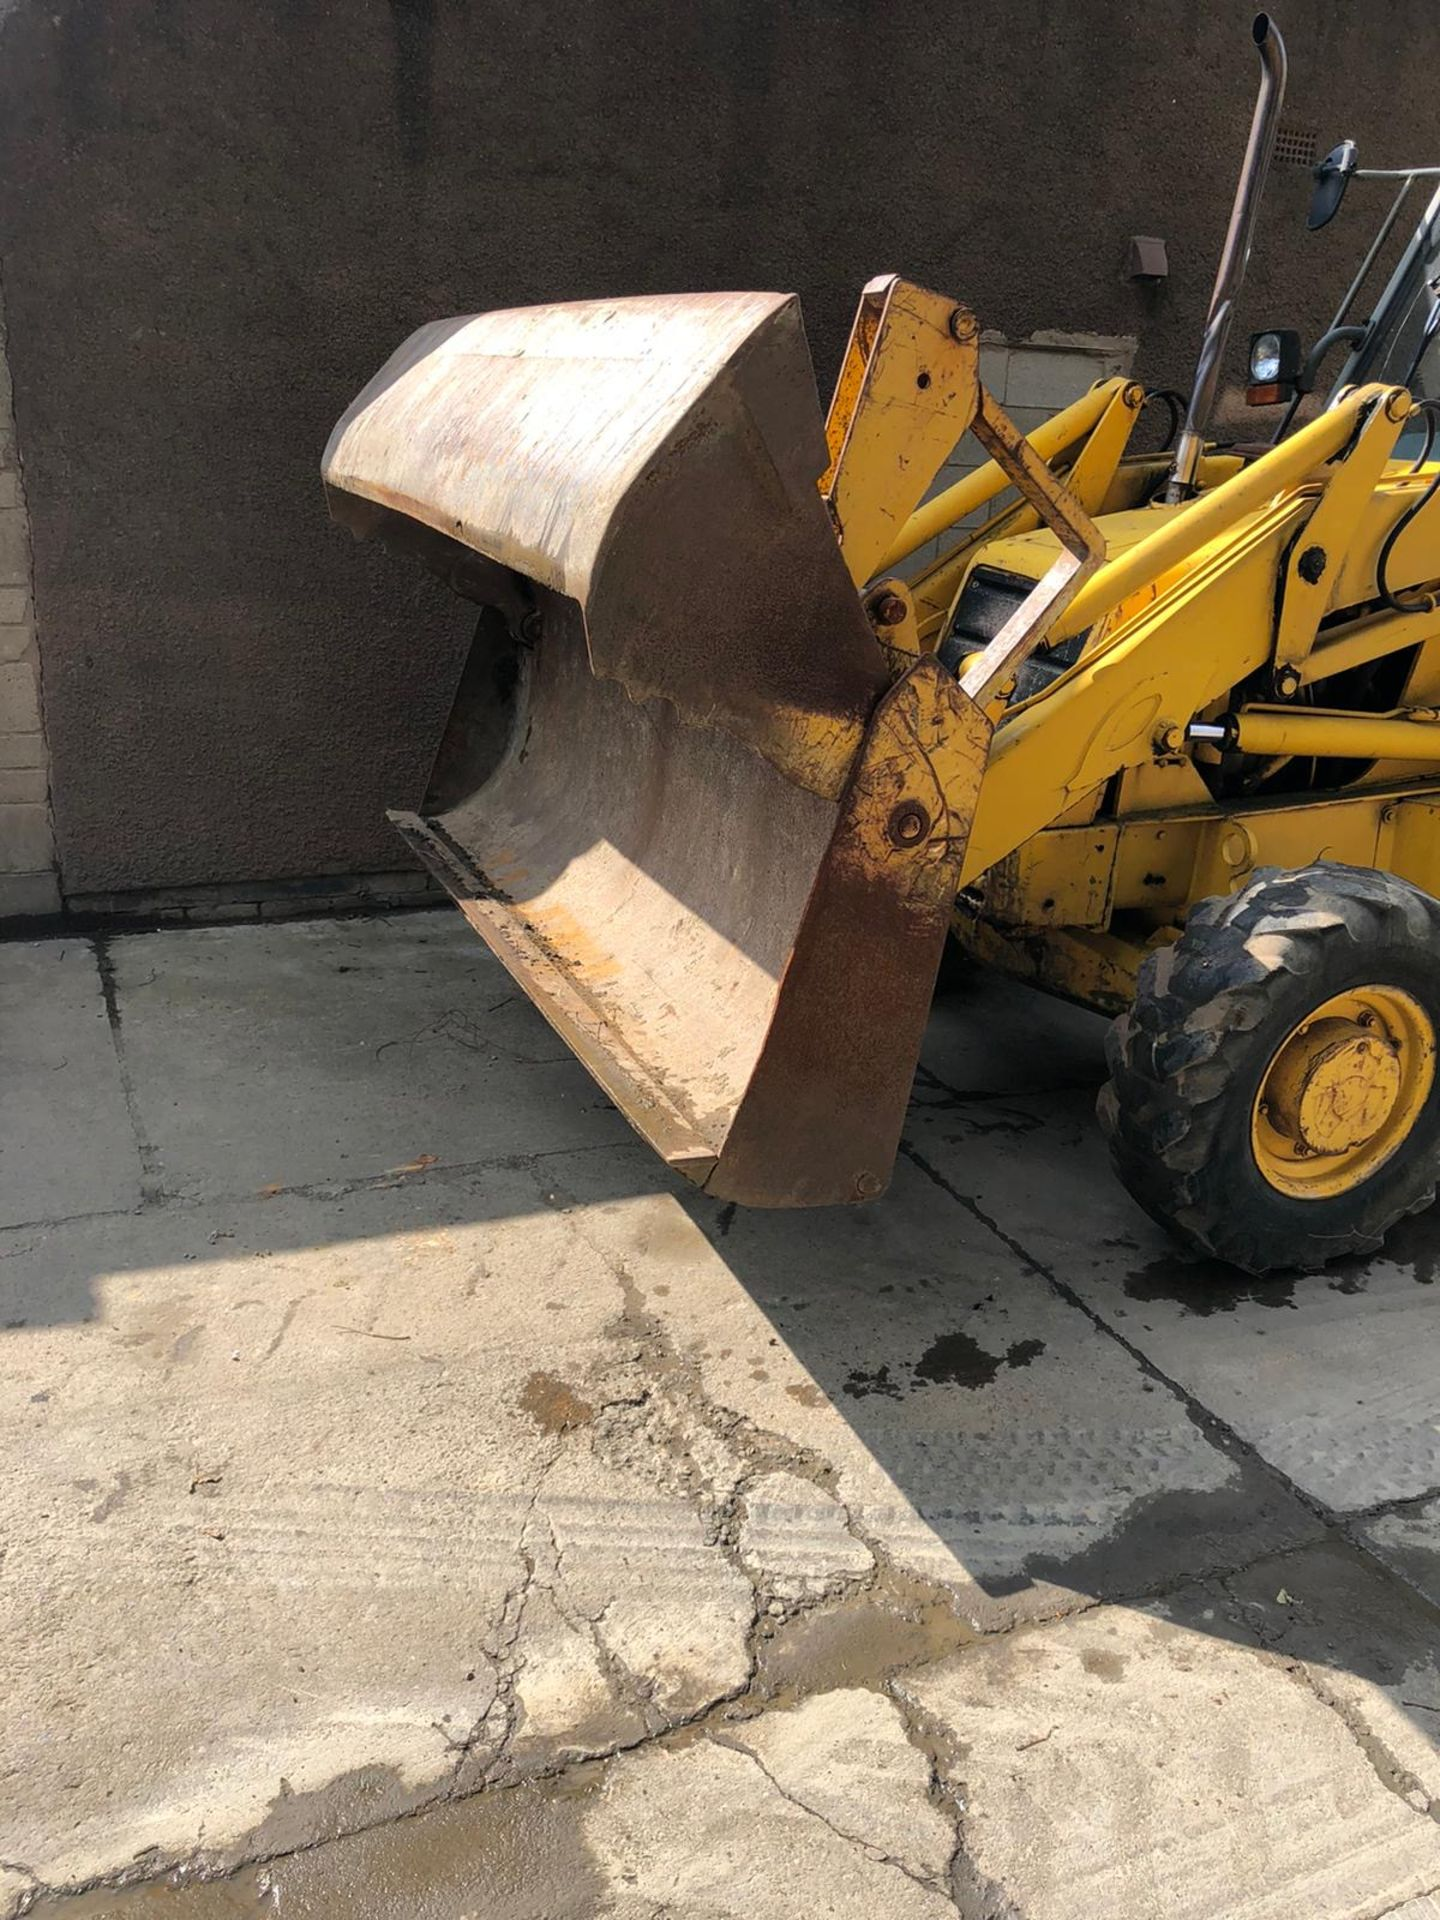 JCB 3CX PROJECT 8 DIGGER, 4X4, EXTRA DIG, C/W 3 BUCKETS, HOURS FROM NEW 7434 ONLY *NO VAT* - Image 5 of 16